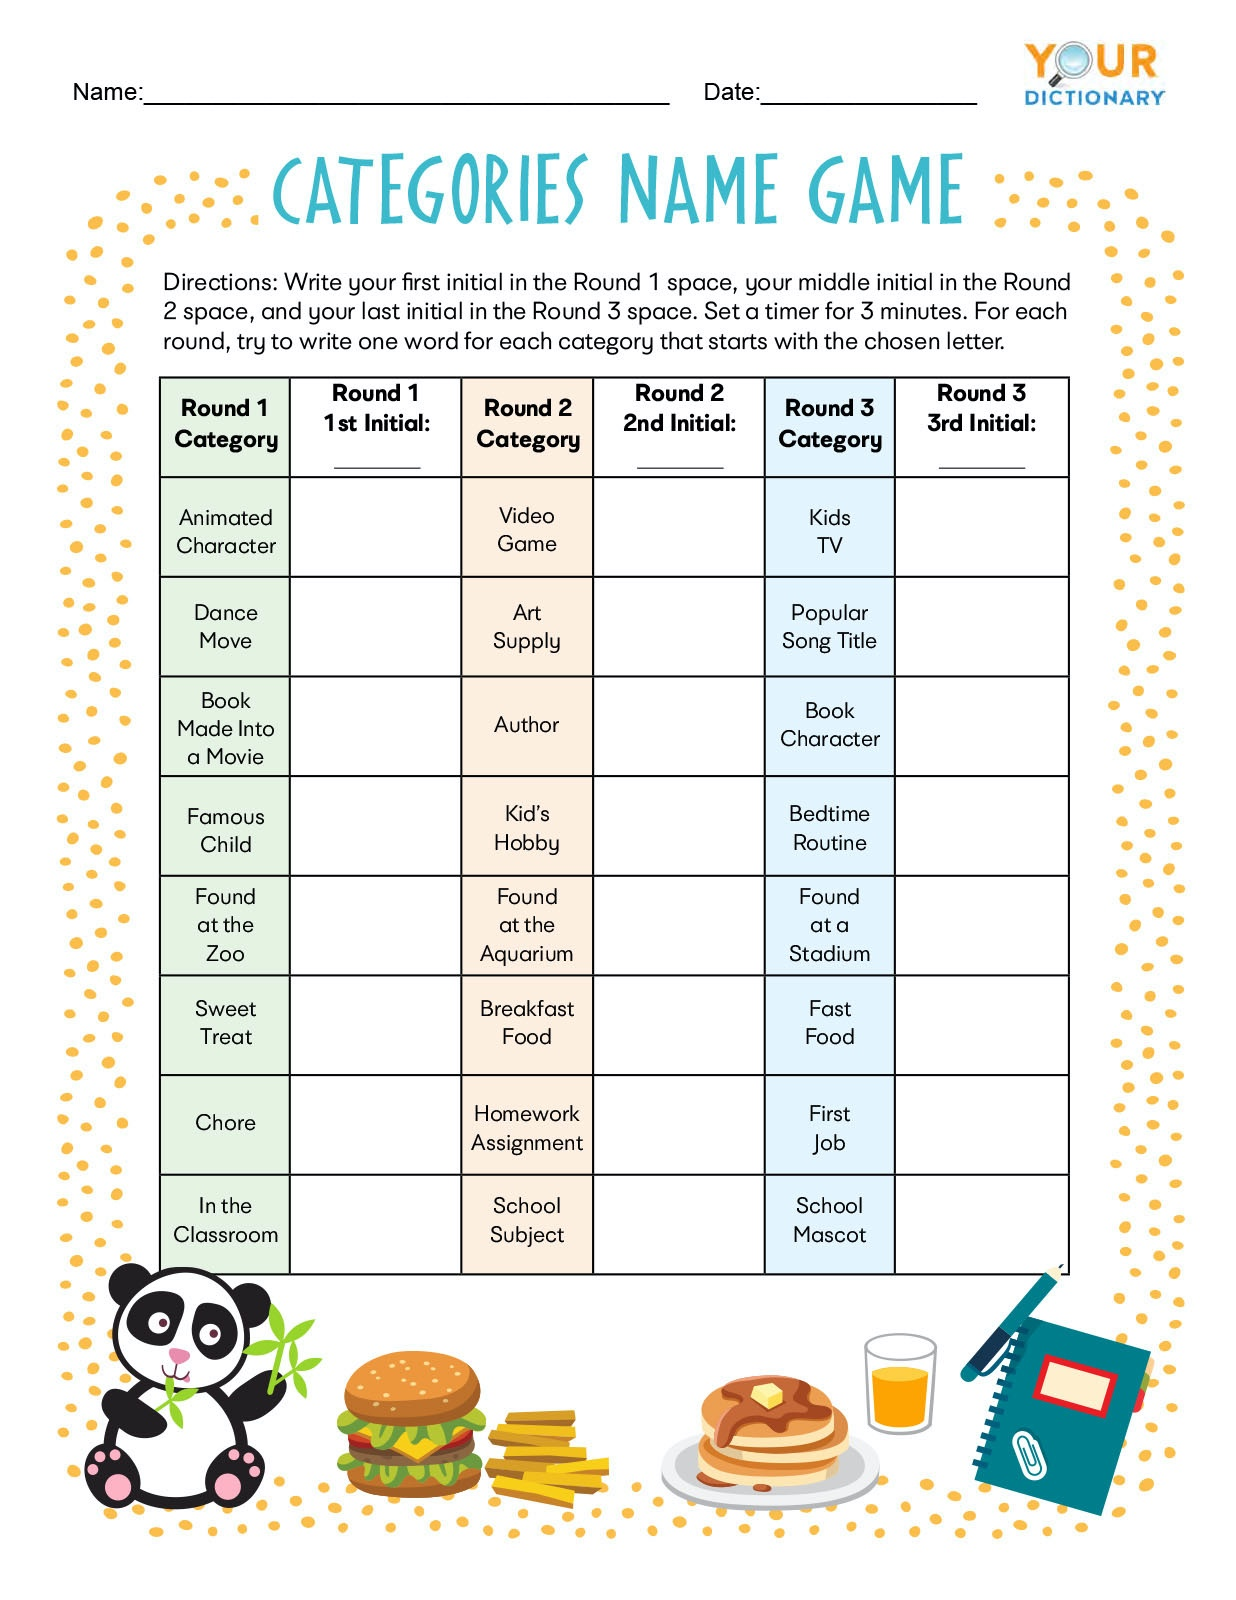 Categories Name Game